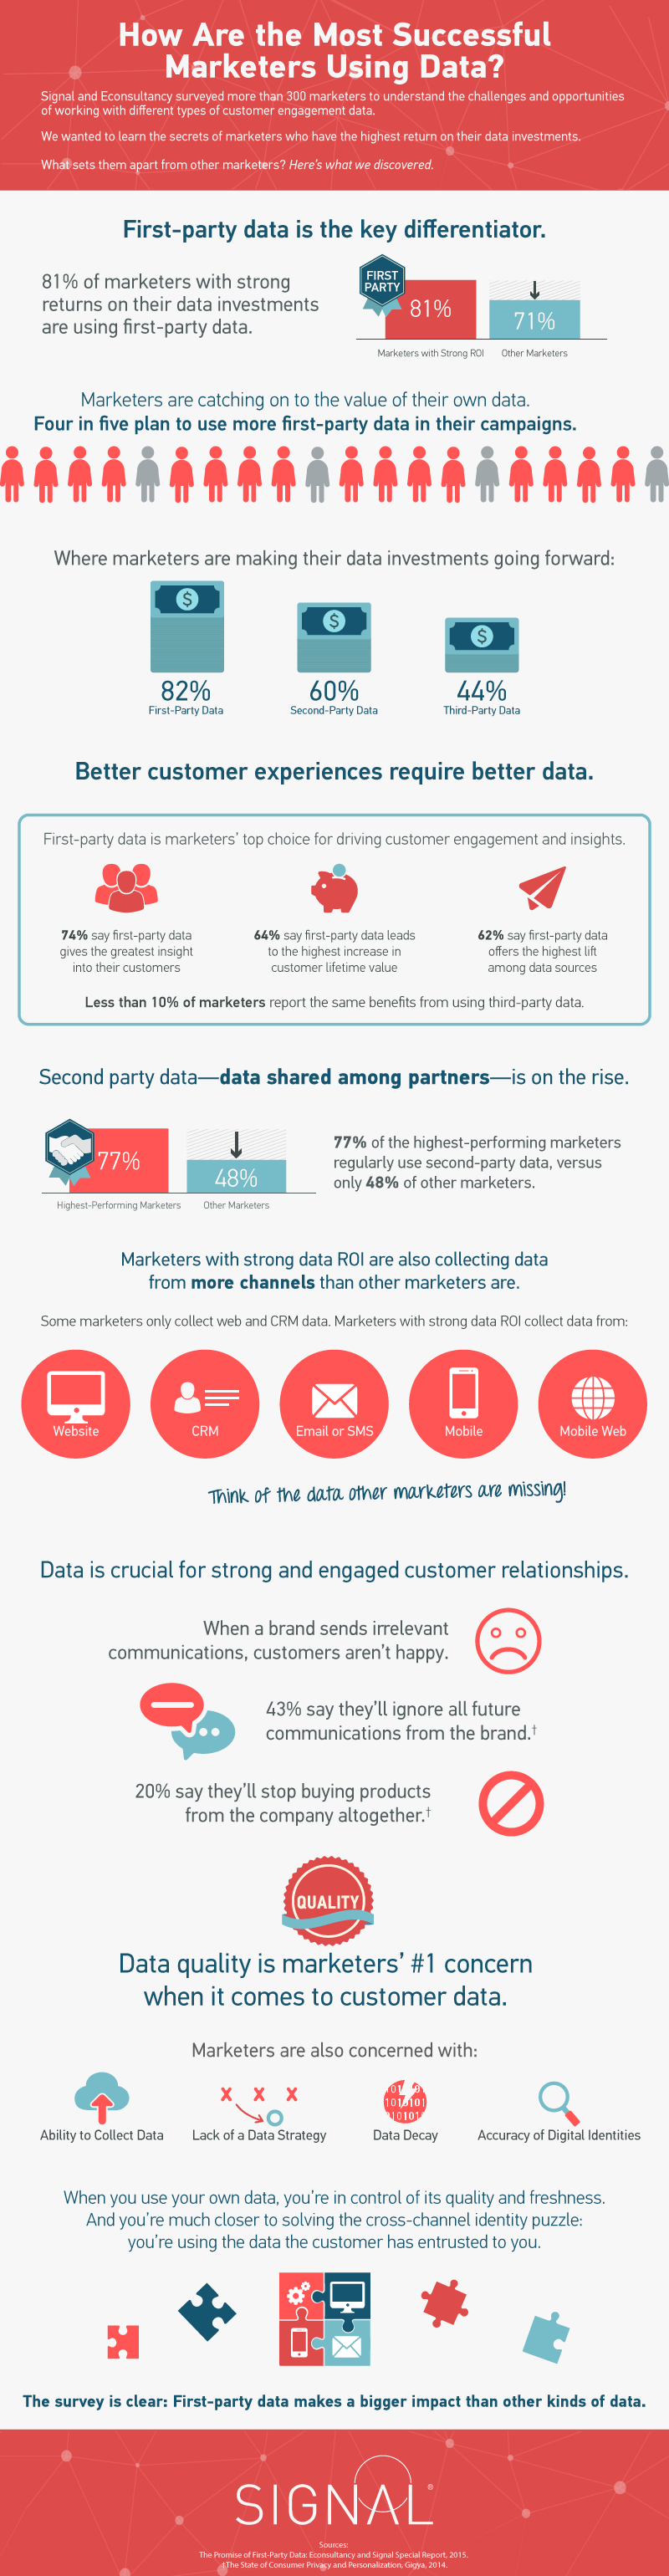 signal-econsultancy-survey-infographic